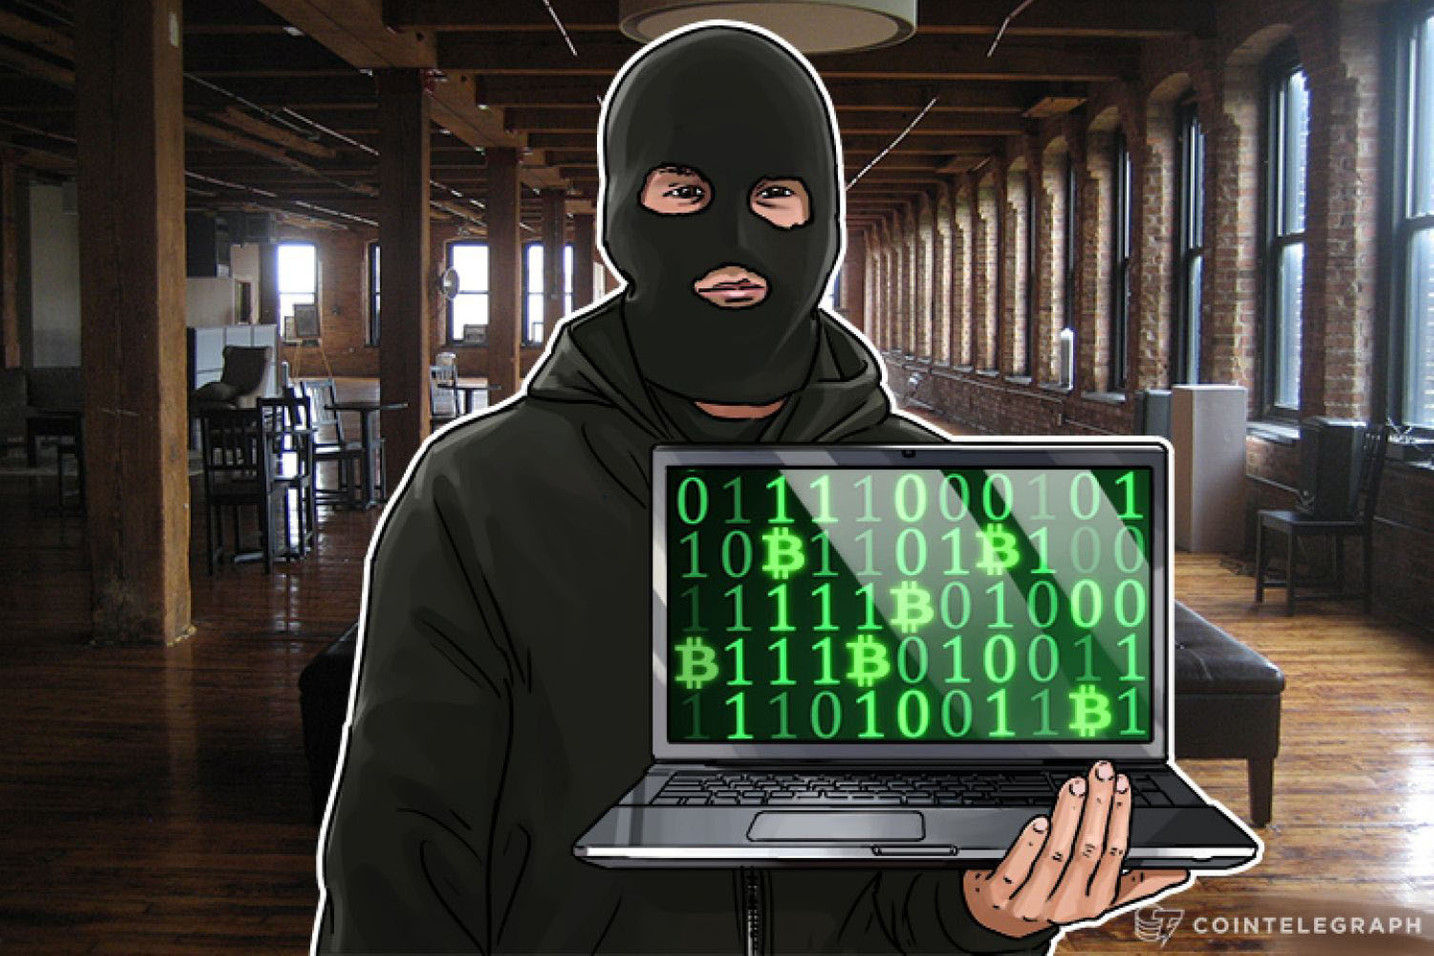 Hacker Pleads Guilty of Stealing  $365,000 Worth of Bitcoin From Darknet Criminals